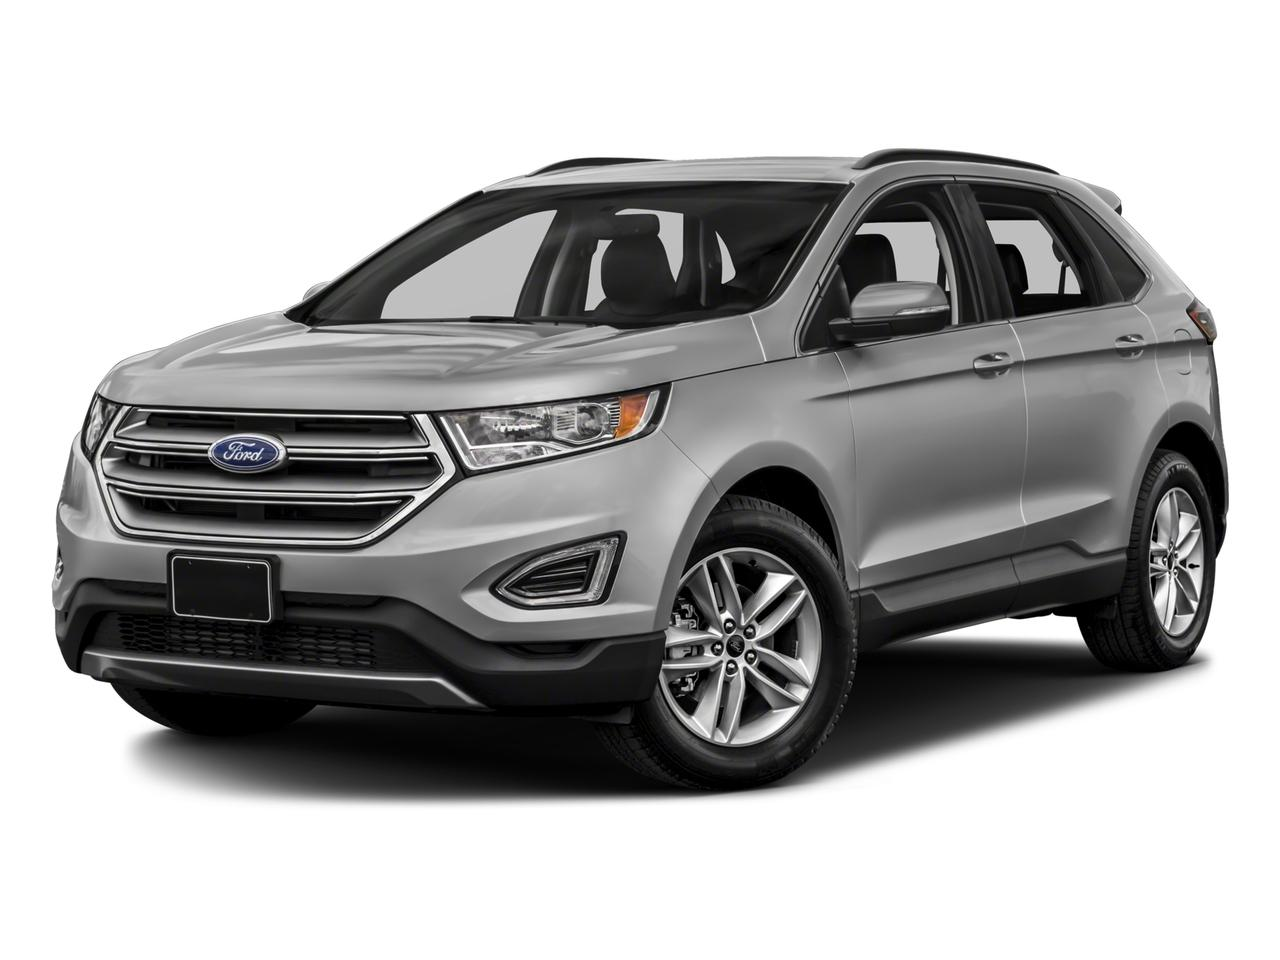 2018 Ford Edge Vehicle Photo in Oshkosh, WI 54904